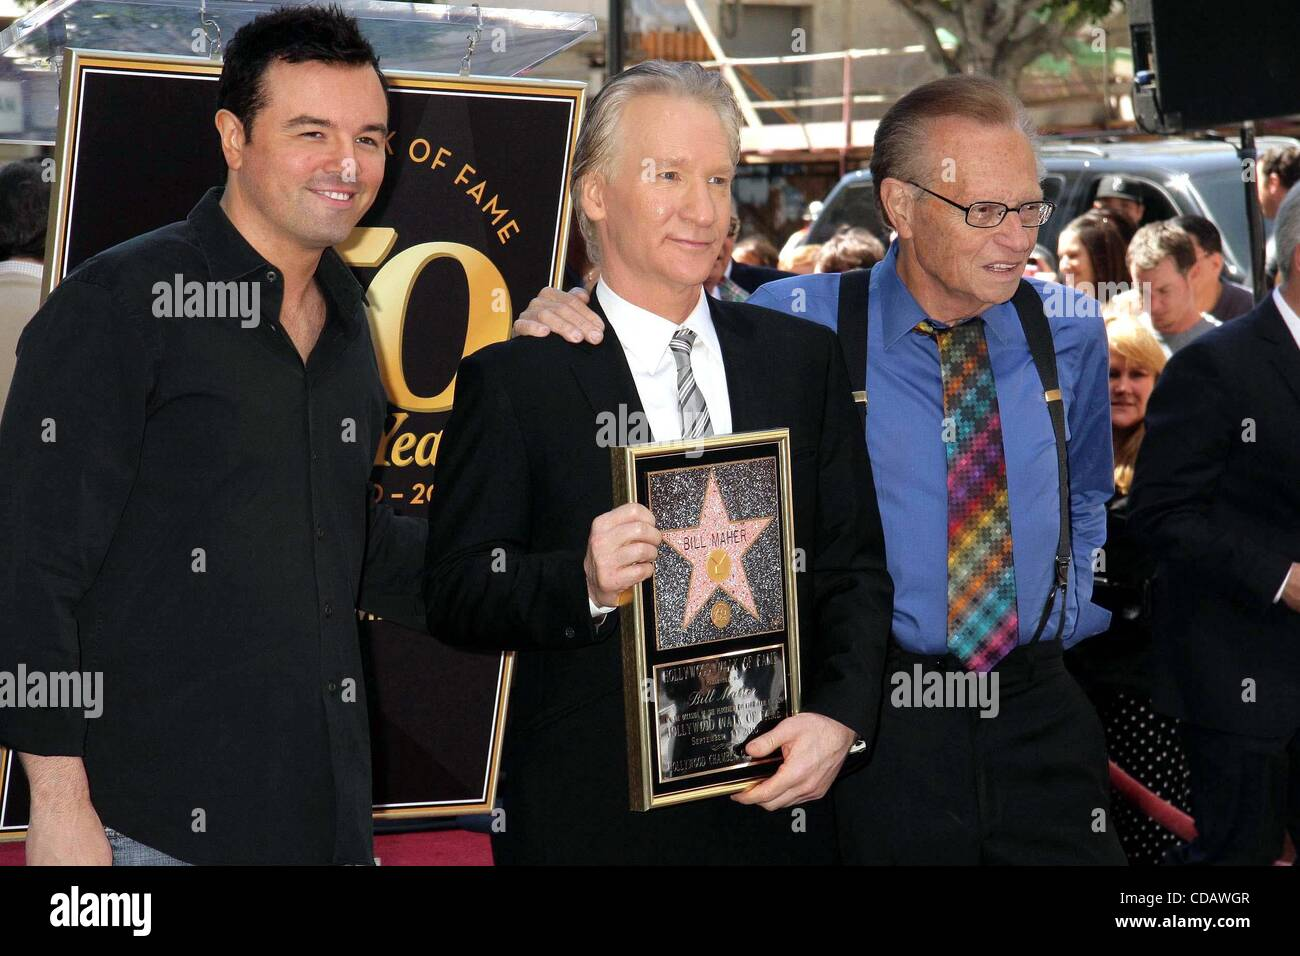 Sept. 14, 2010 - Hollywood, California, U.S. - I14774CHW .Bill Maher Honored With Star on The Hollywood Walk Of Stock Photo